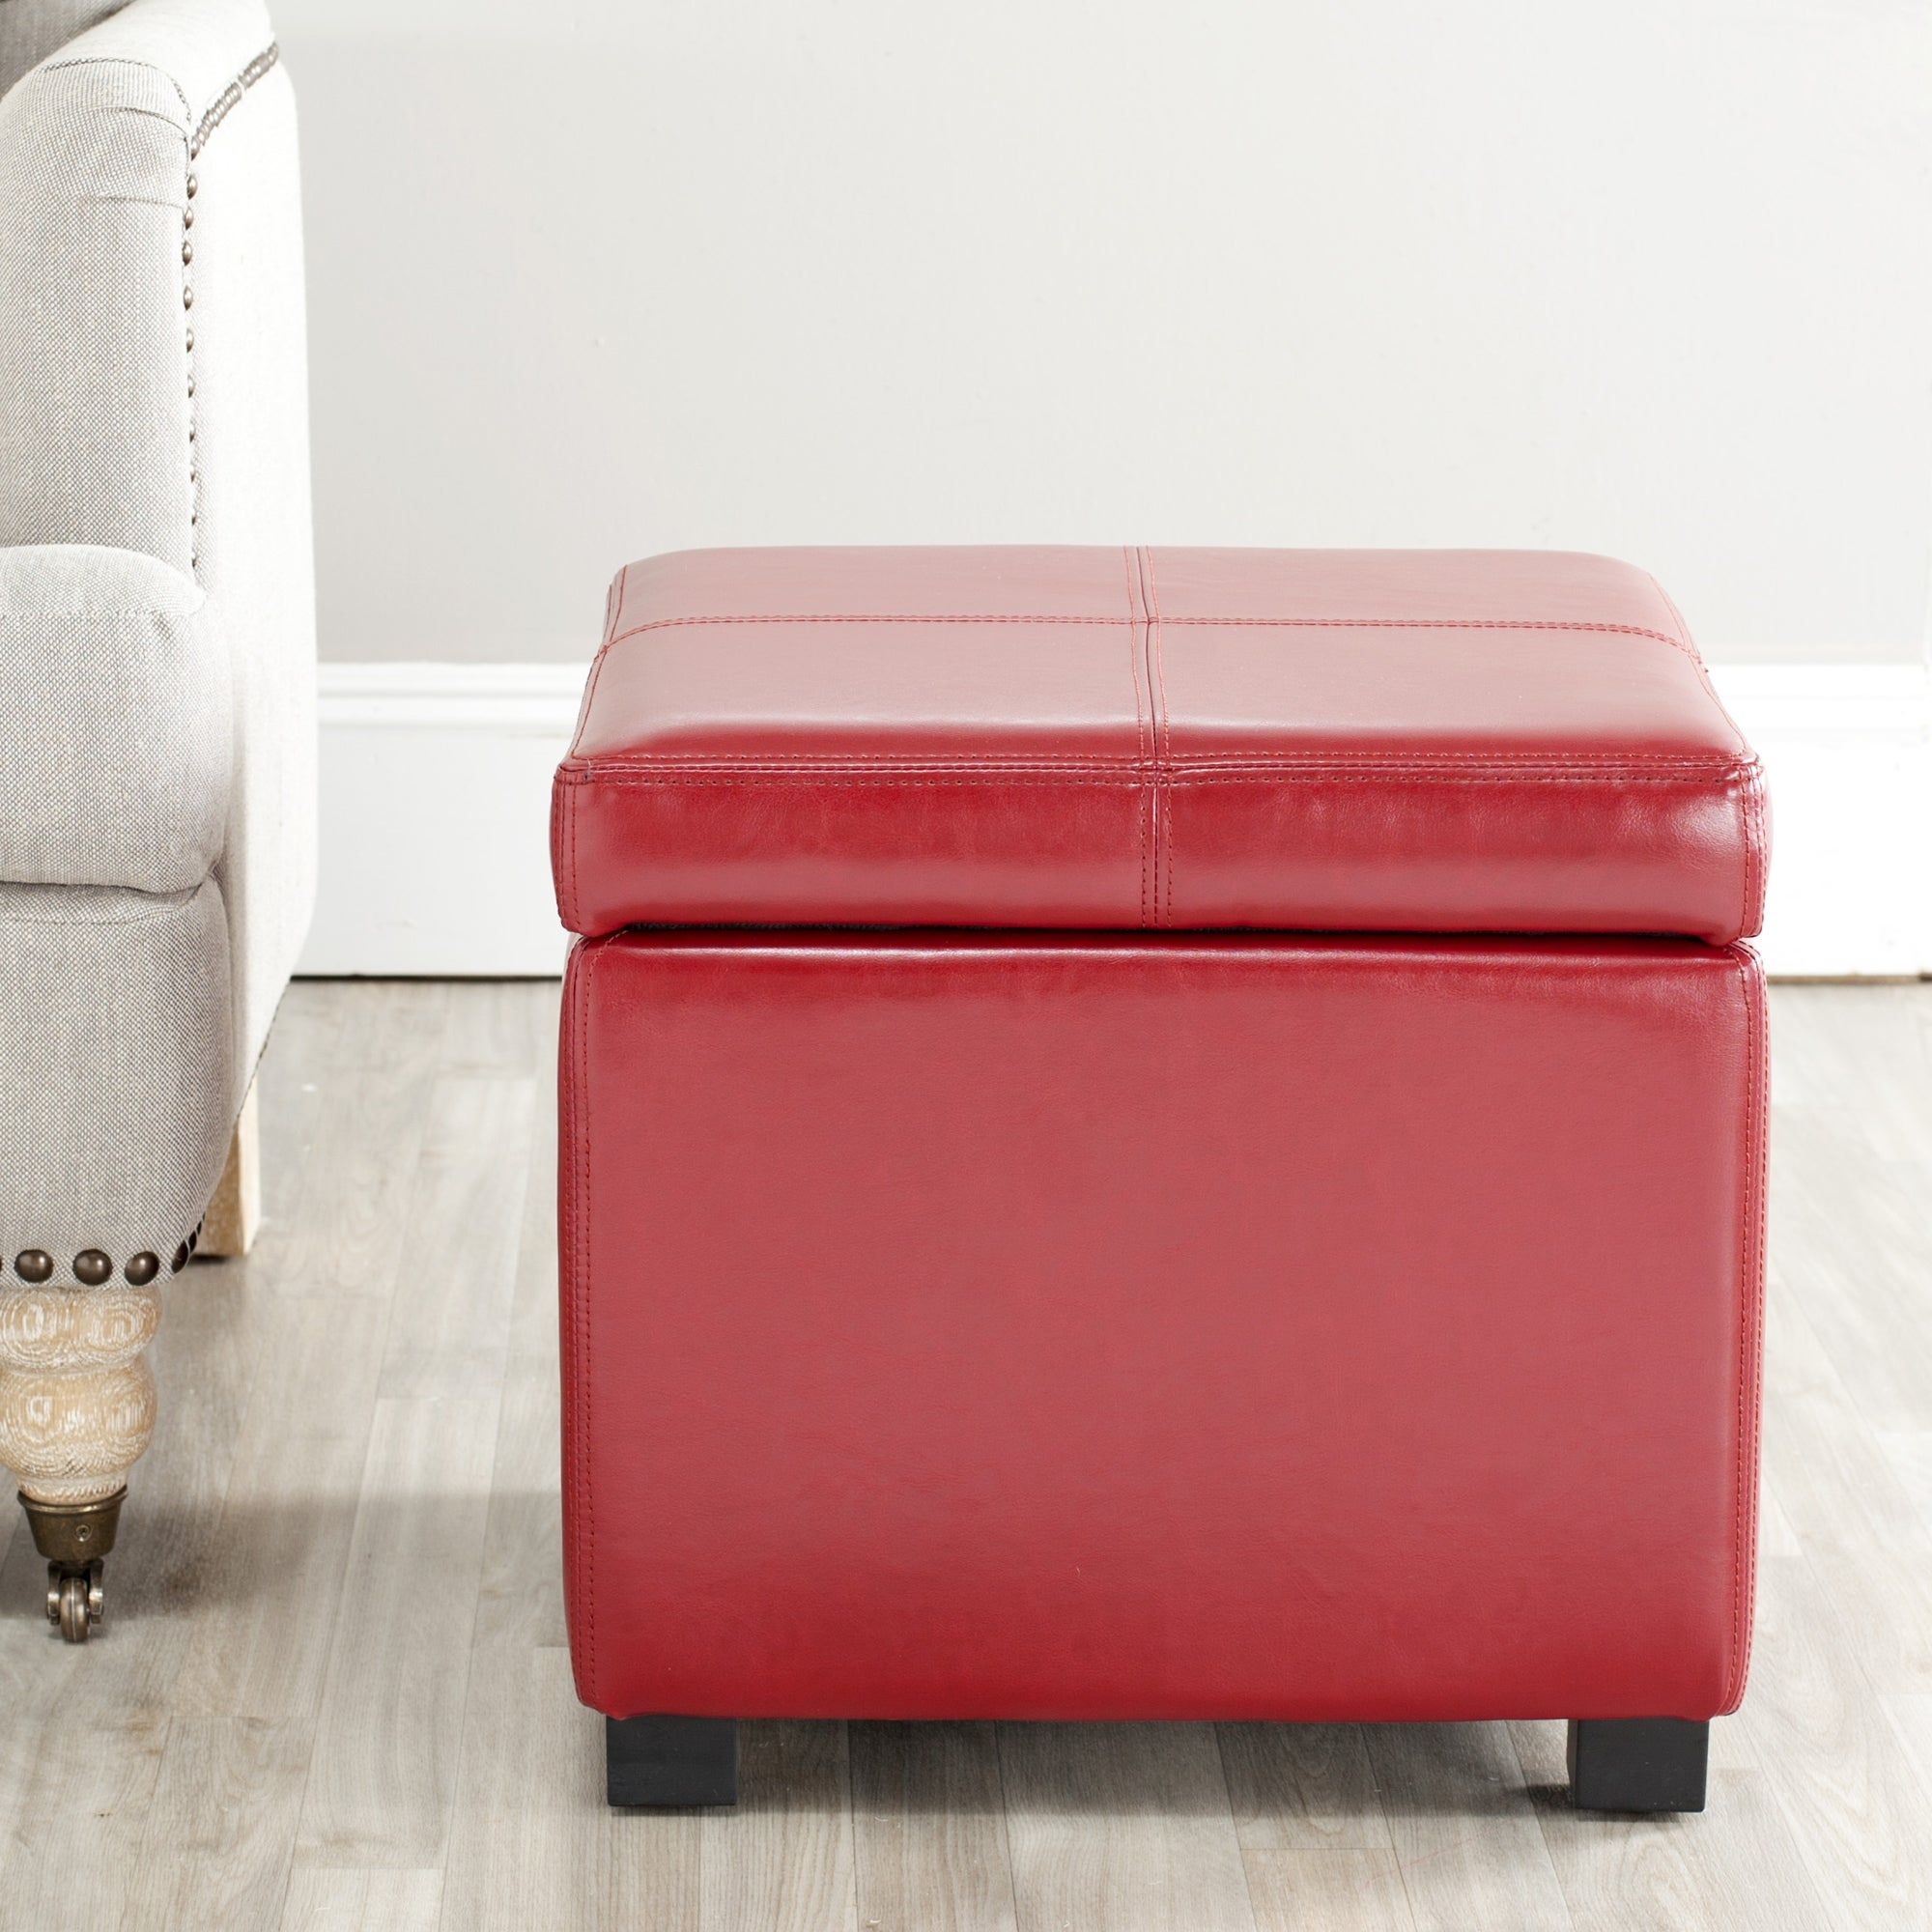 Shop Safavieh Broadway Red Leather Storage Ottoman - Free Shipping Today - Overstock.com - 5880662 & Shop Safavieh Broadway Red Leather Storage Ottoman - Free Shipping ...